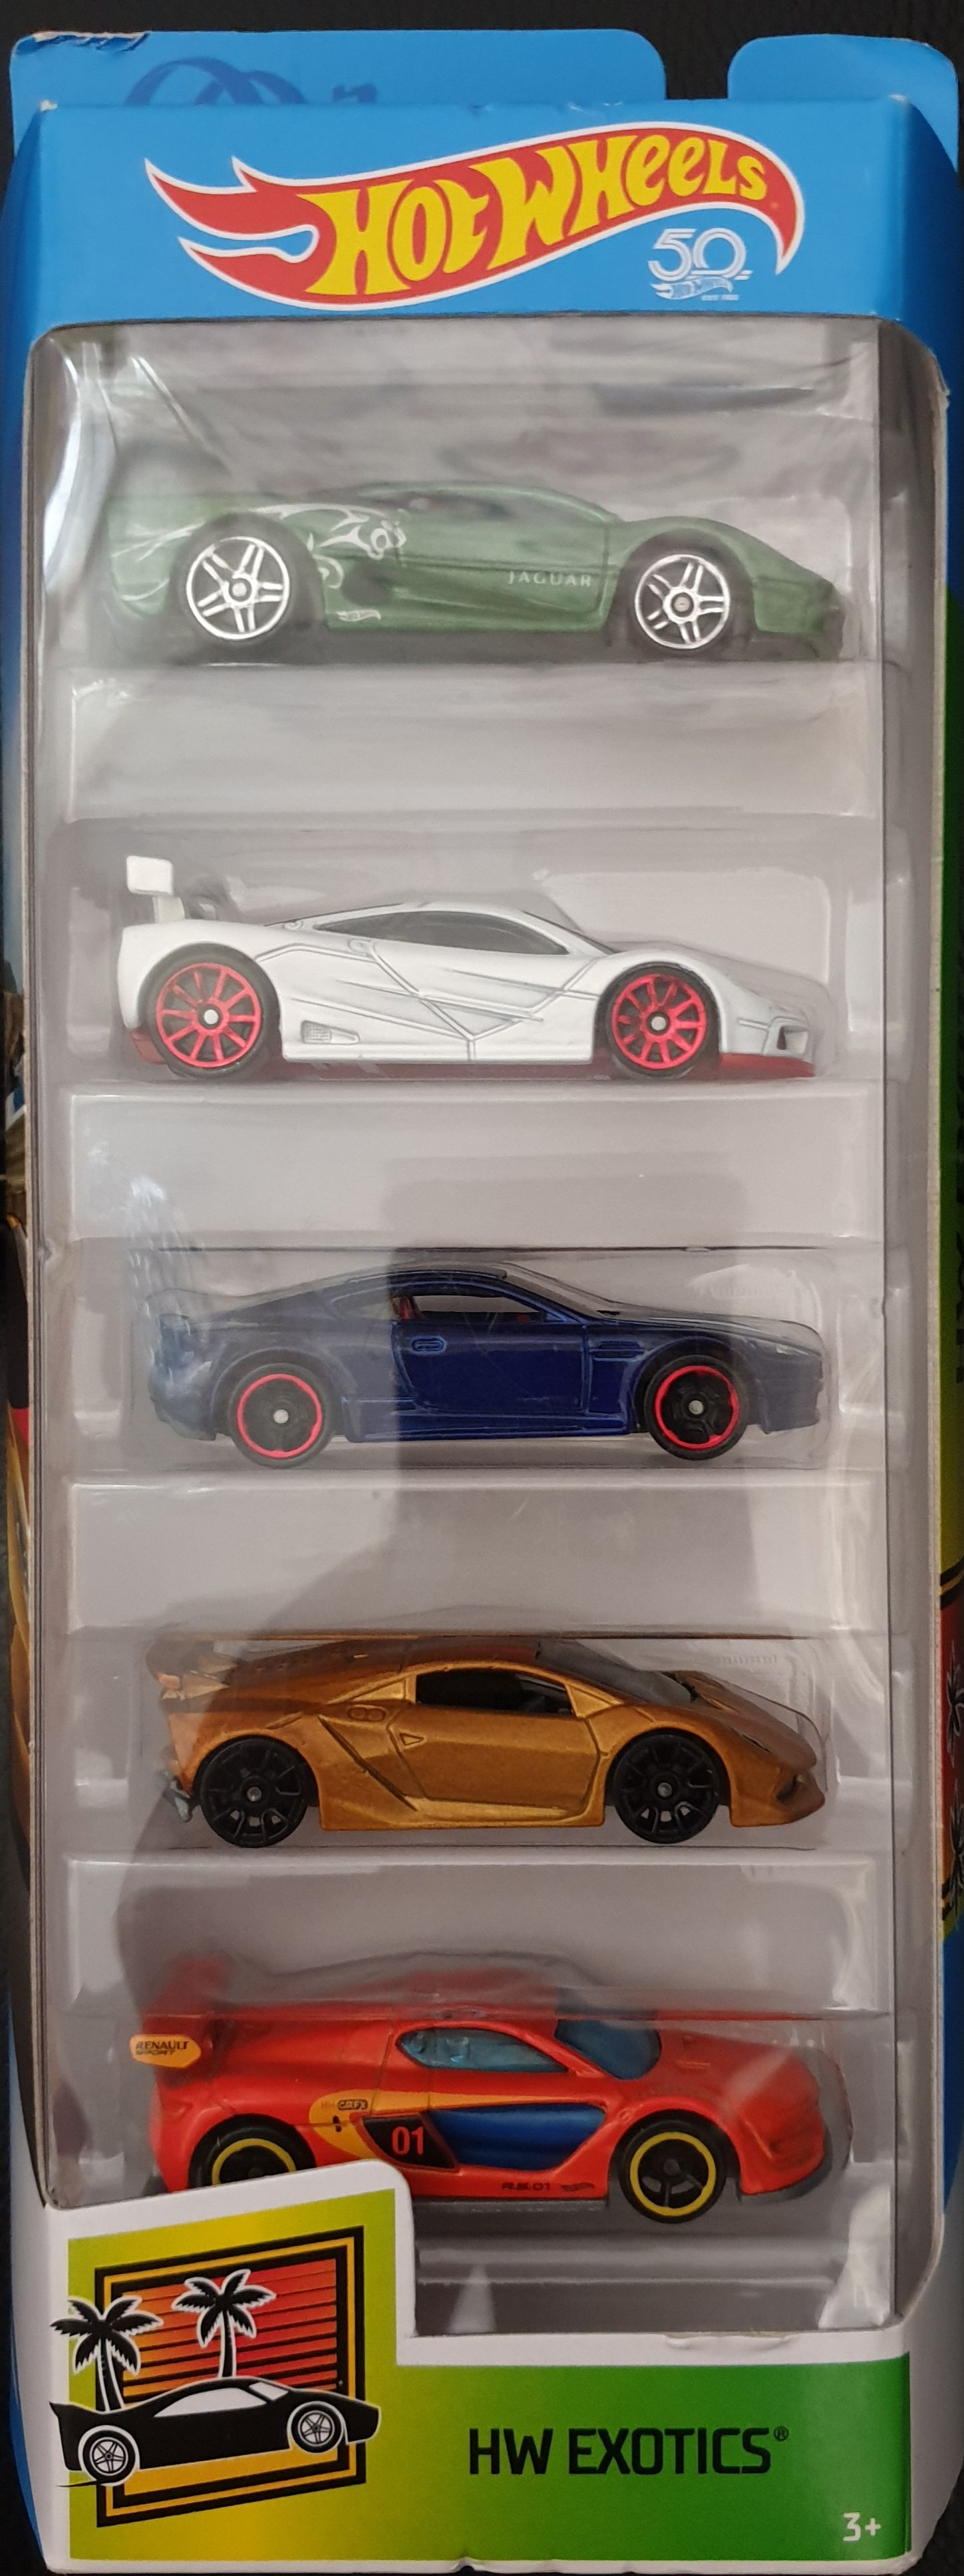 2018 HW Exotics 5 Pack : McLaren F1 GTR Toy Car, Die Cast, And Hot Wheels (2018) back image (back cover, second image)